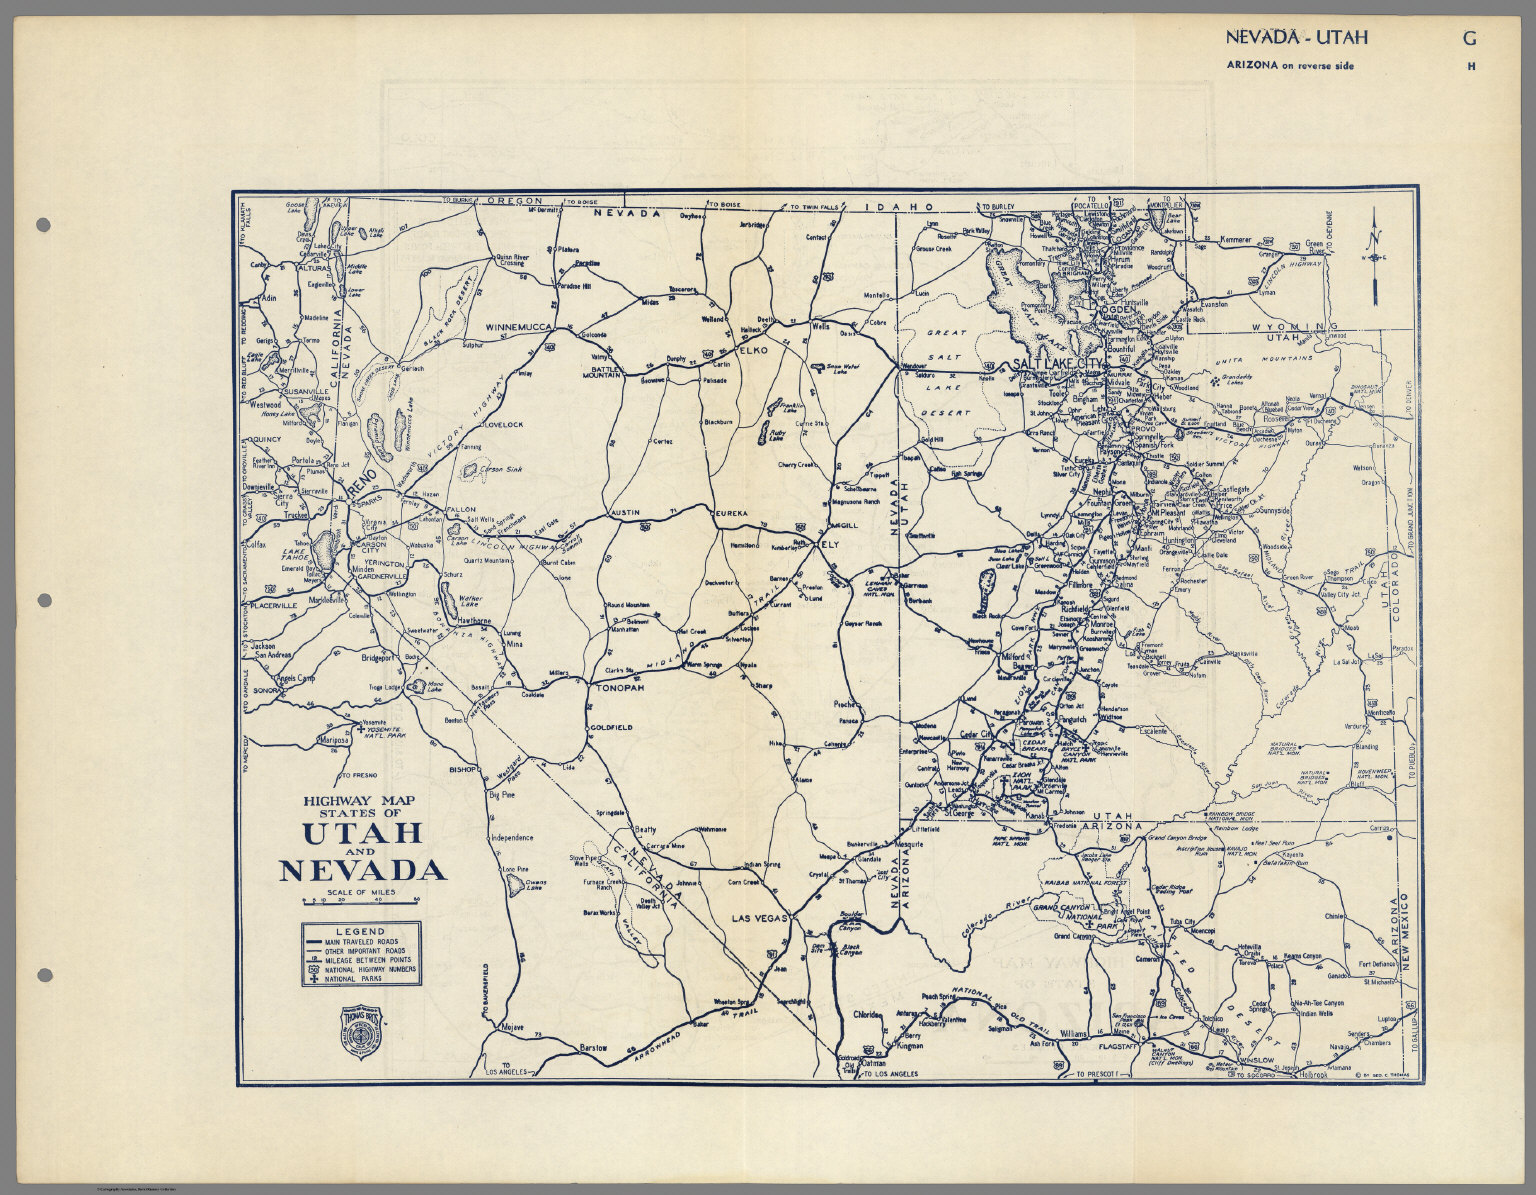 Highway Map States of Utah and Nevada. - David Rumsey Historical Map ...